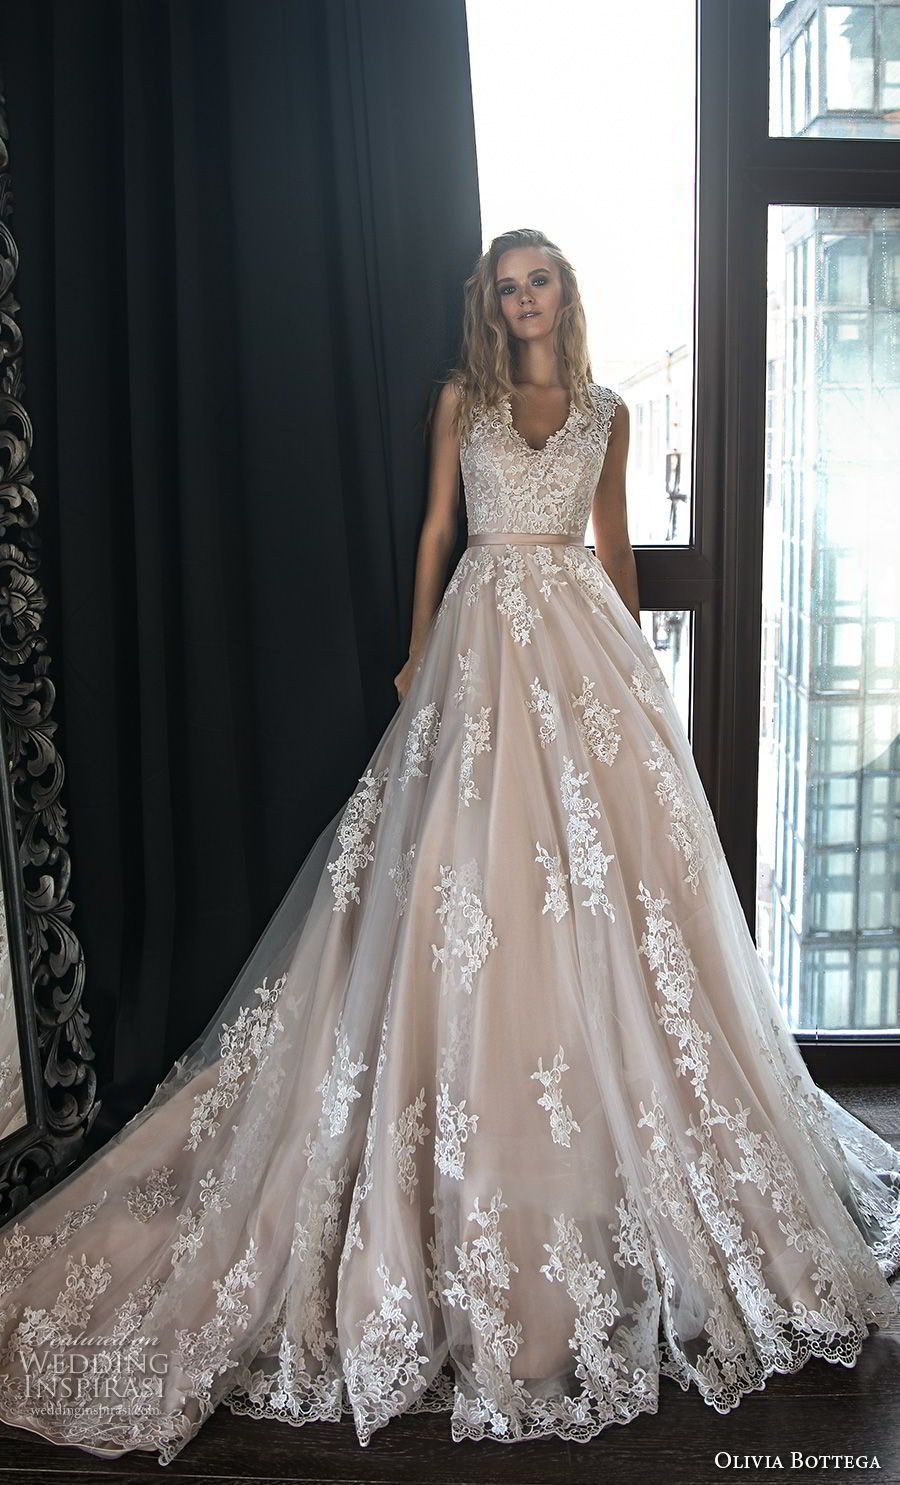 Olivia bottega wedding dresses pinterest bruidsjurken en